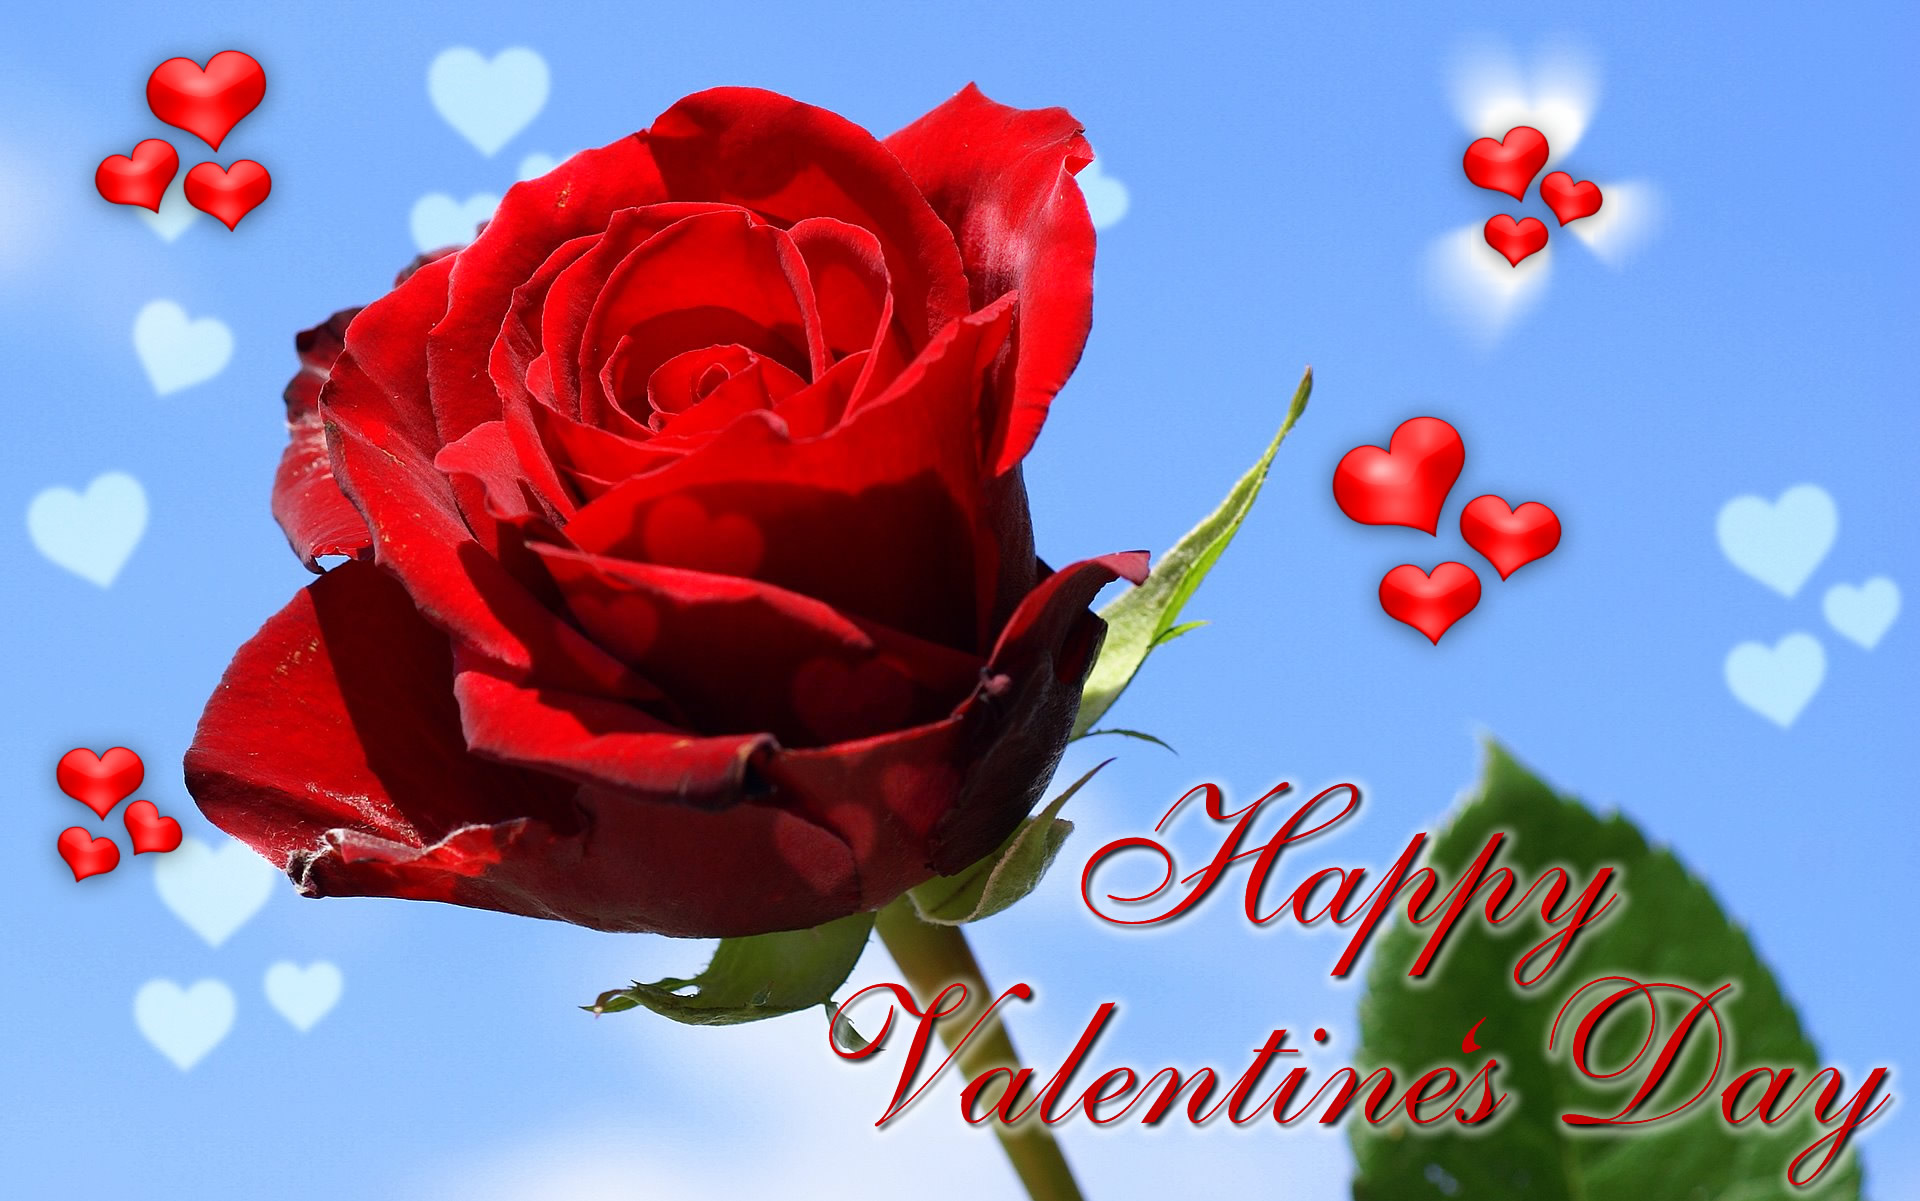 happy valentine\u0027s day card hd wallpaper background imagevalentine\u0027s day